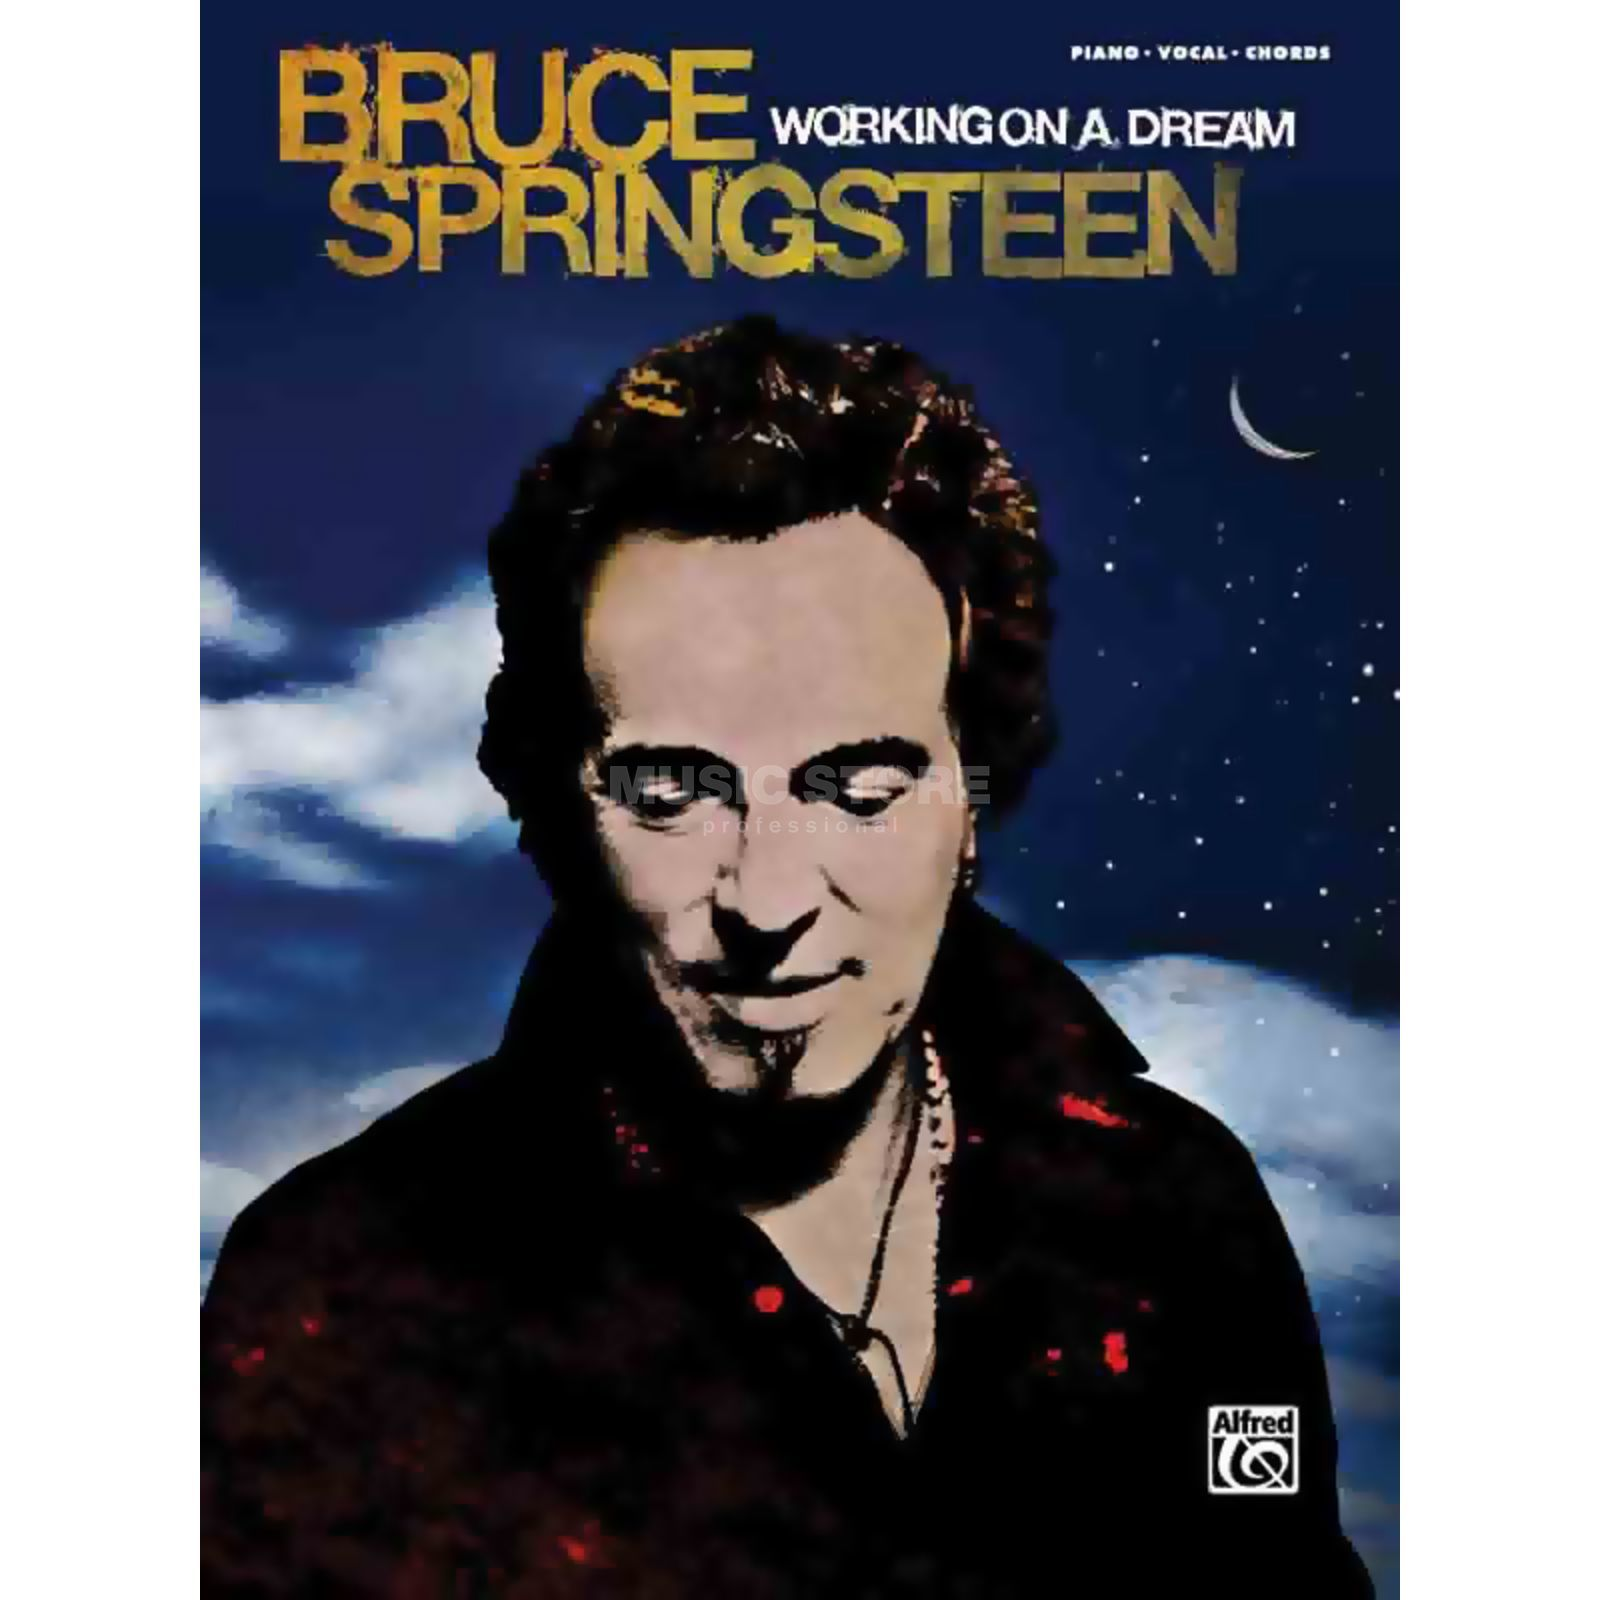 Alfred Music Bruce Springsteen: Working on a Dream Produktbillede